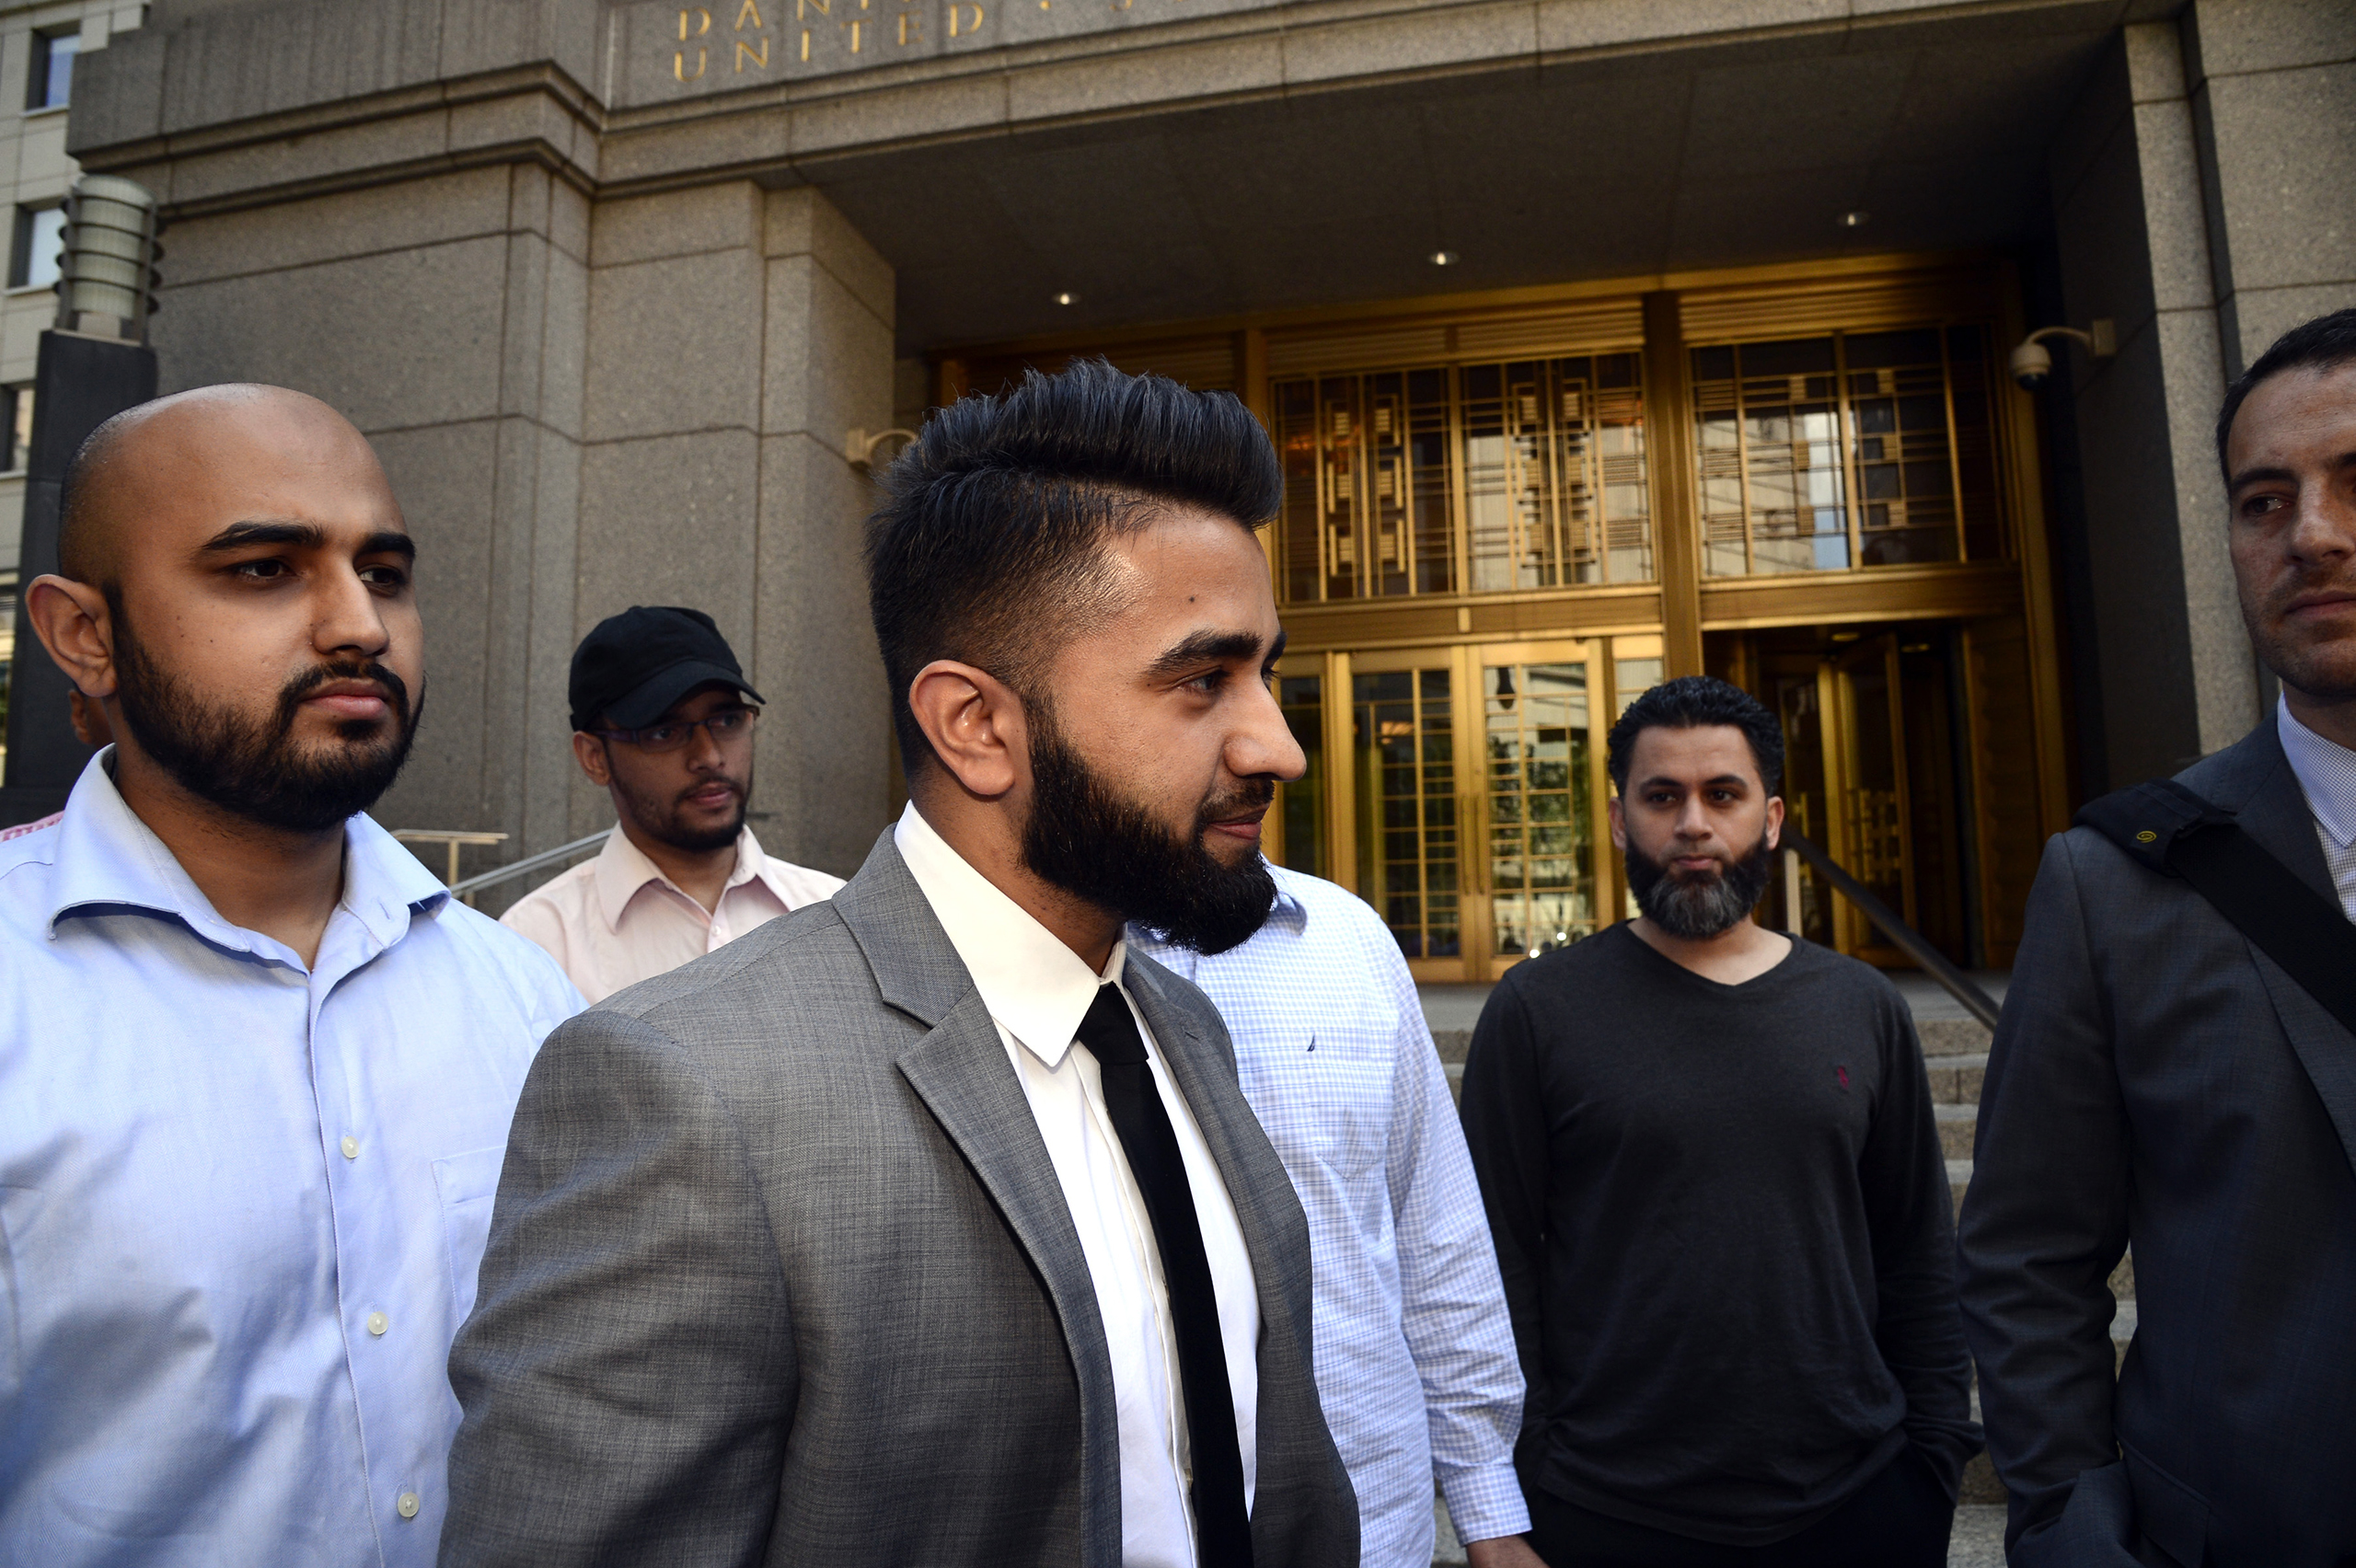 New York Police Department officer Masood Syed, center, leaves Manhattan Federal Court on June 22, 2016. Sayed, a Sunni Muslim, filed a lawsuit against the city for suspending him from the force over the length of his beard.